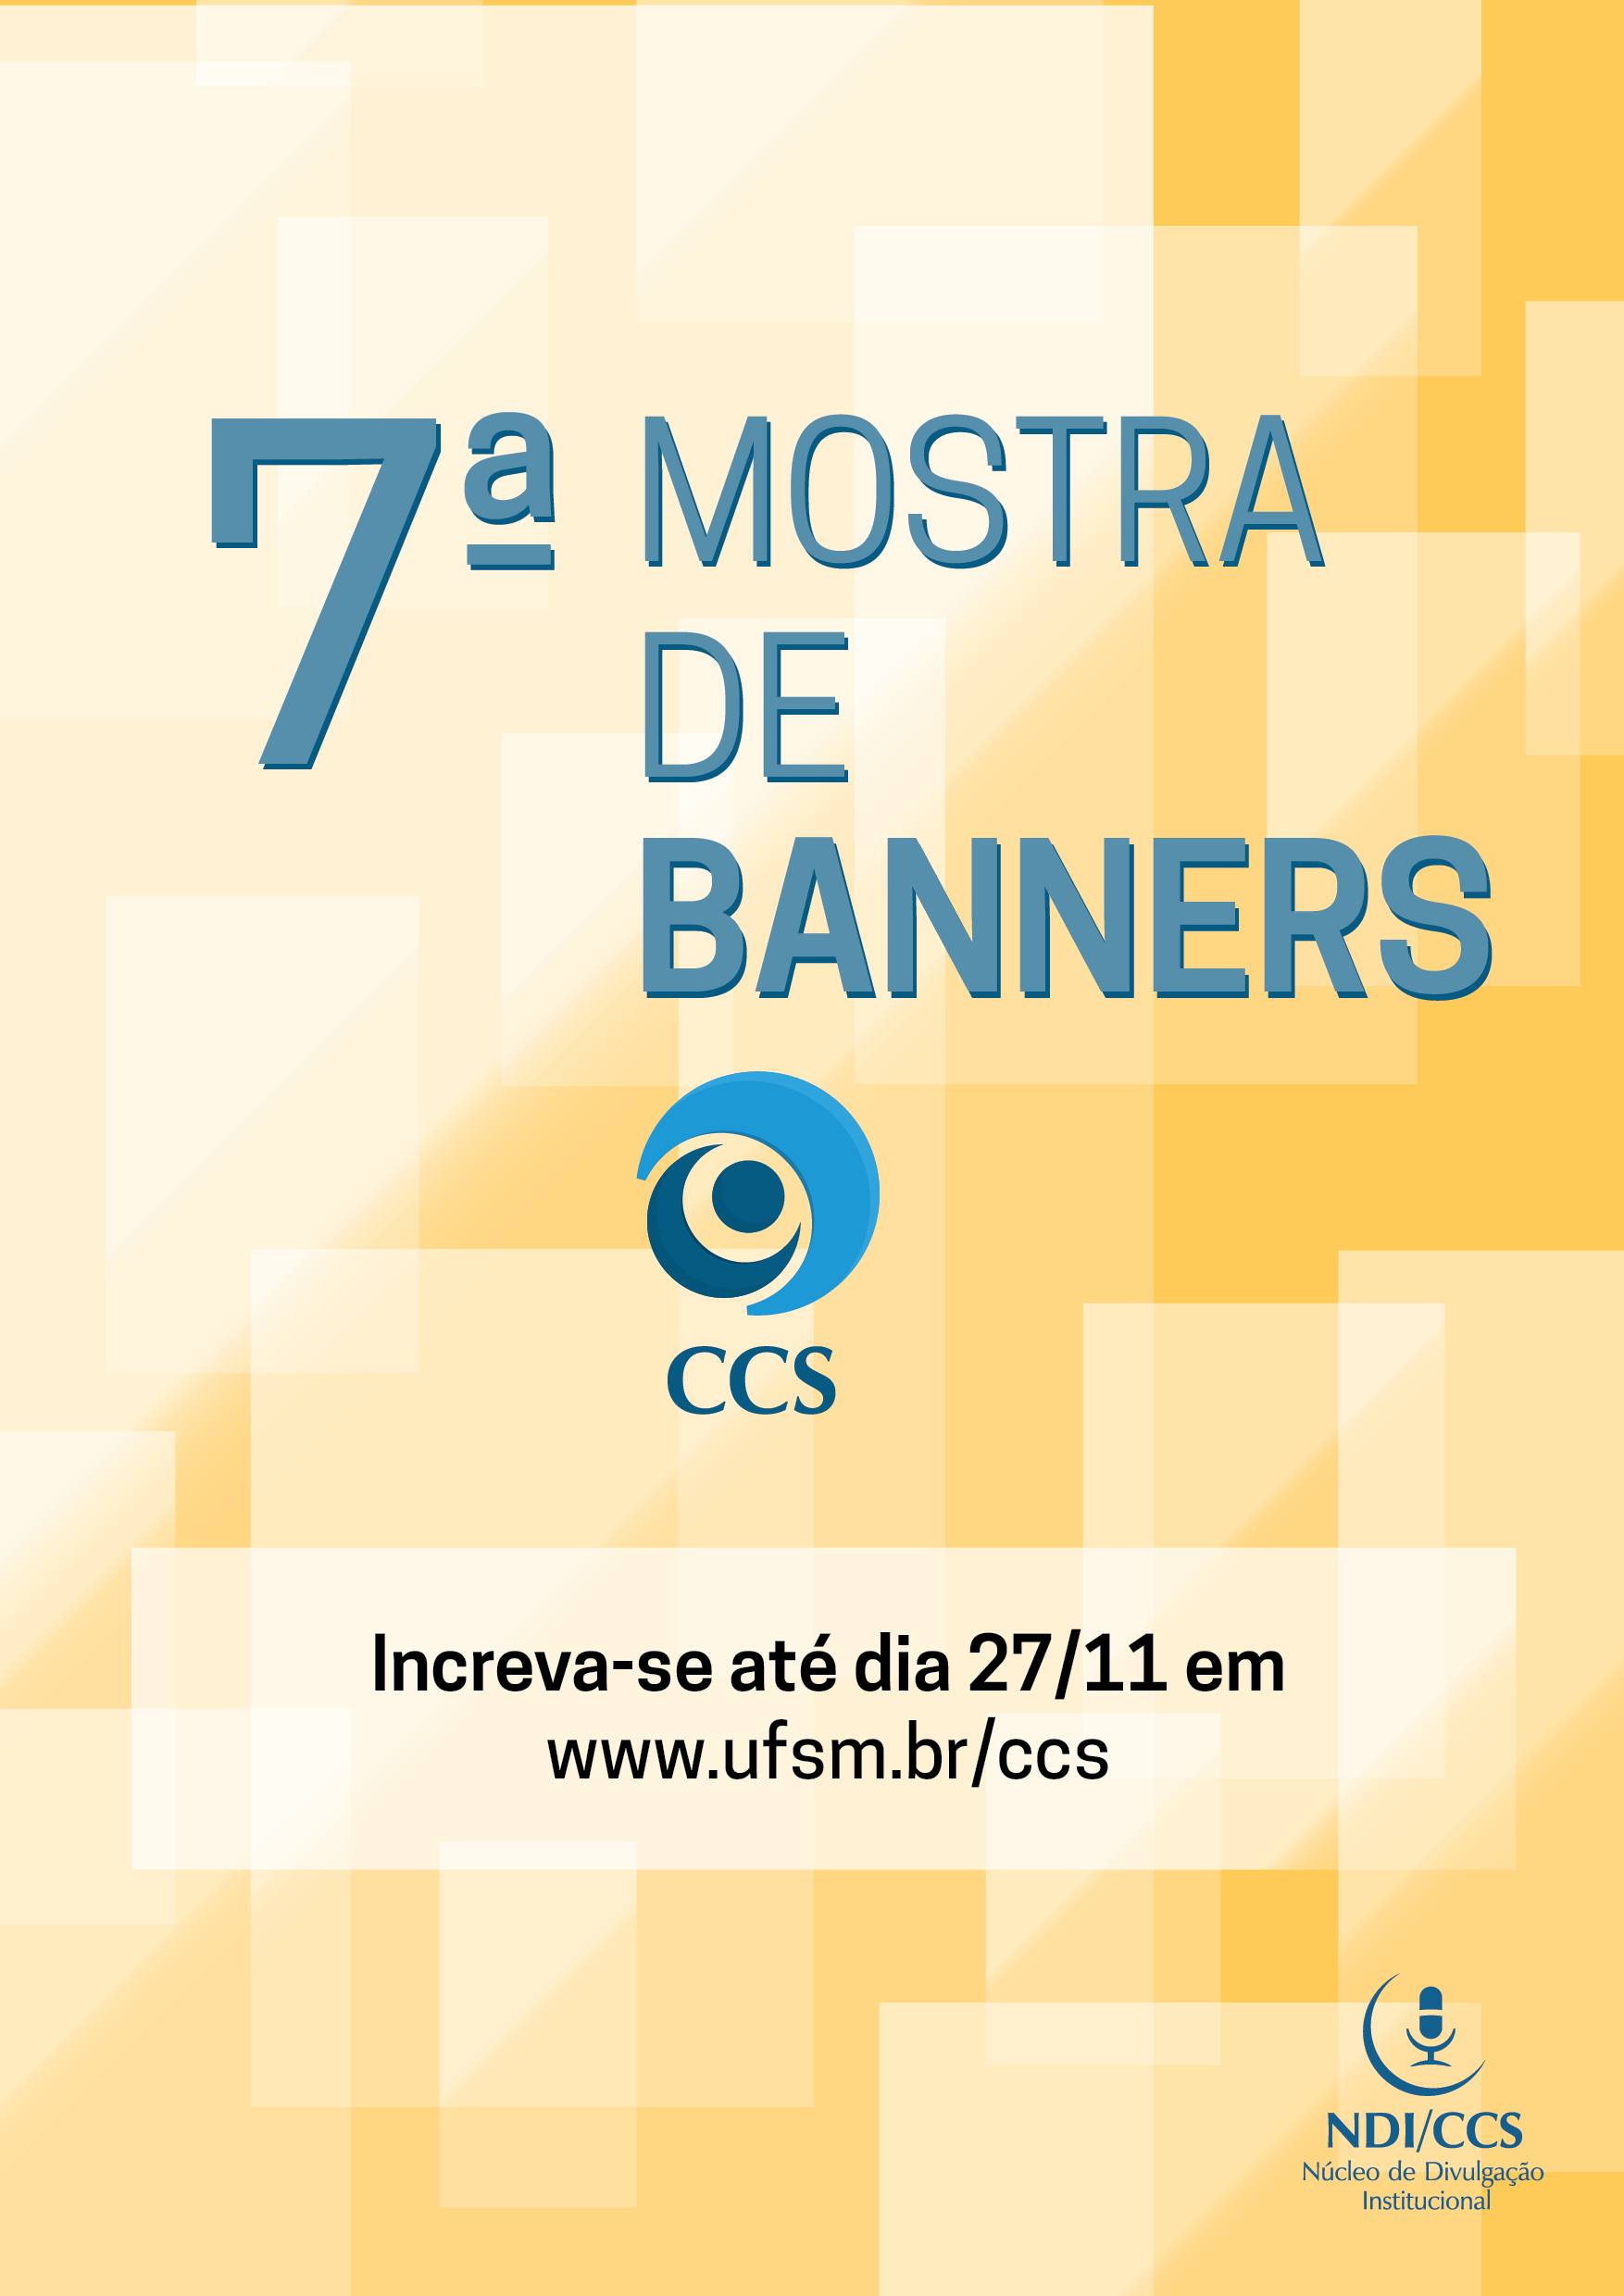 banners mostra 0001 02